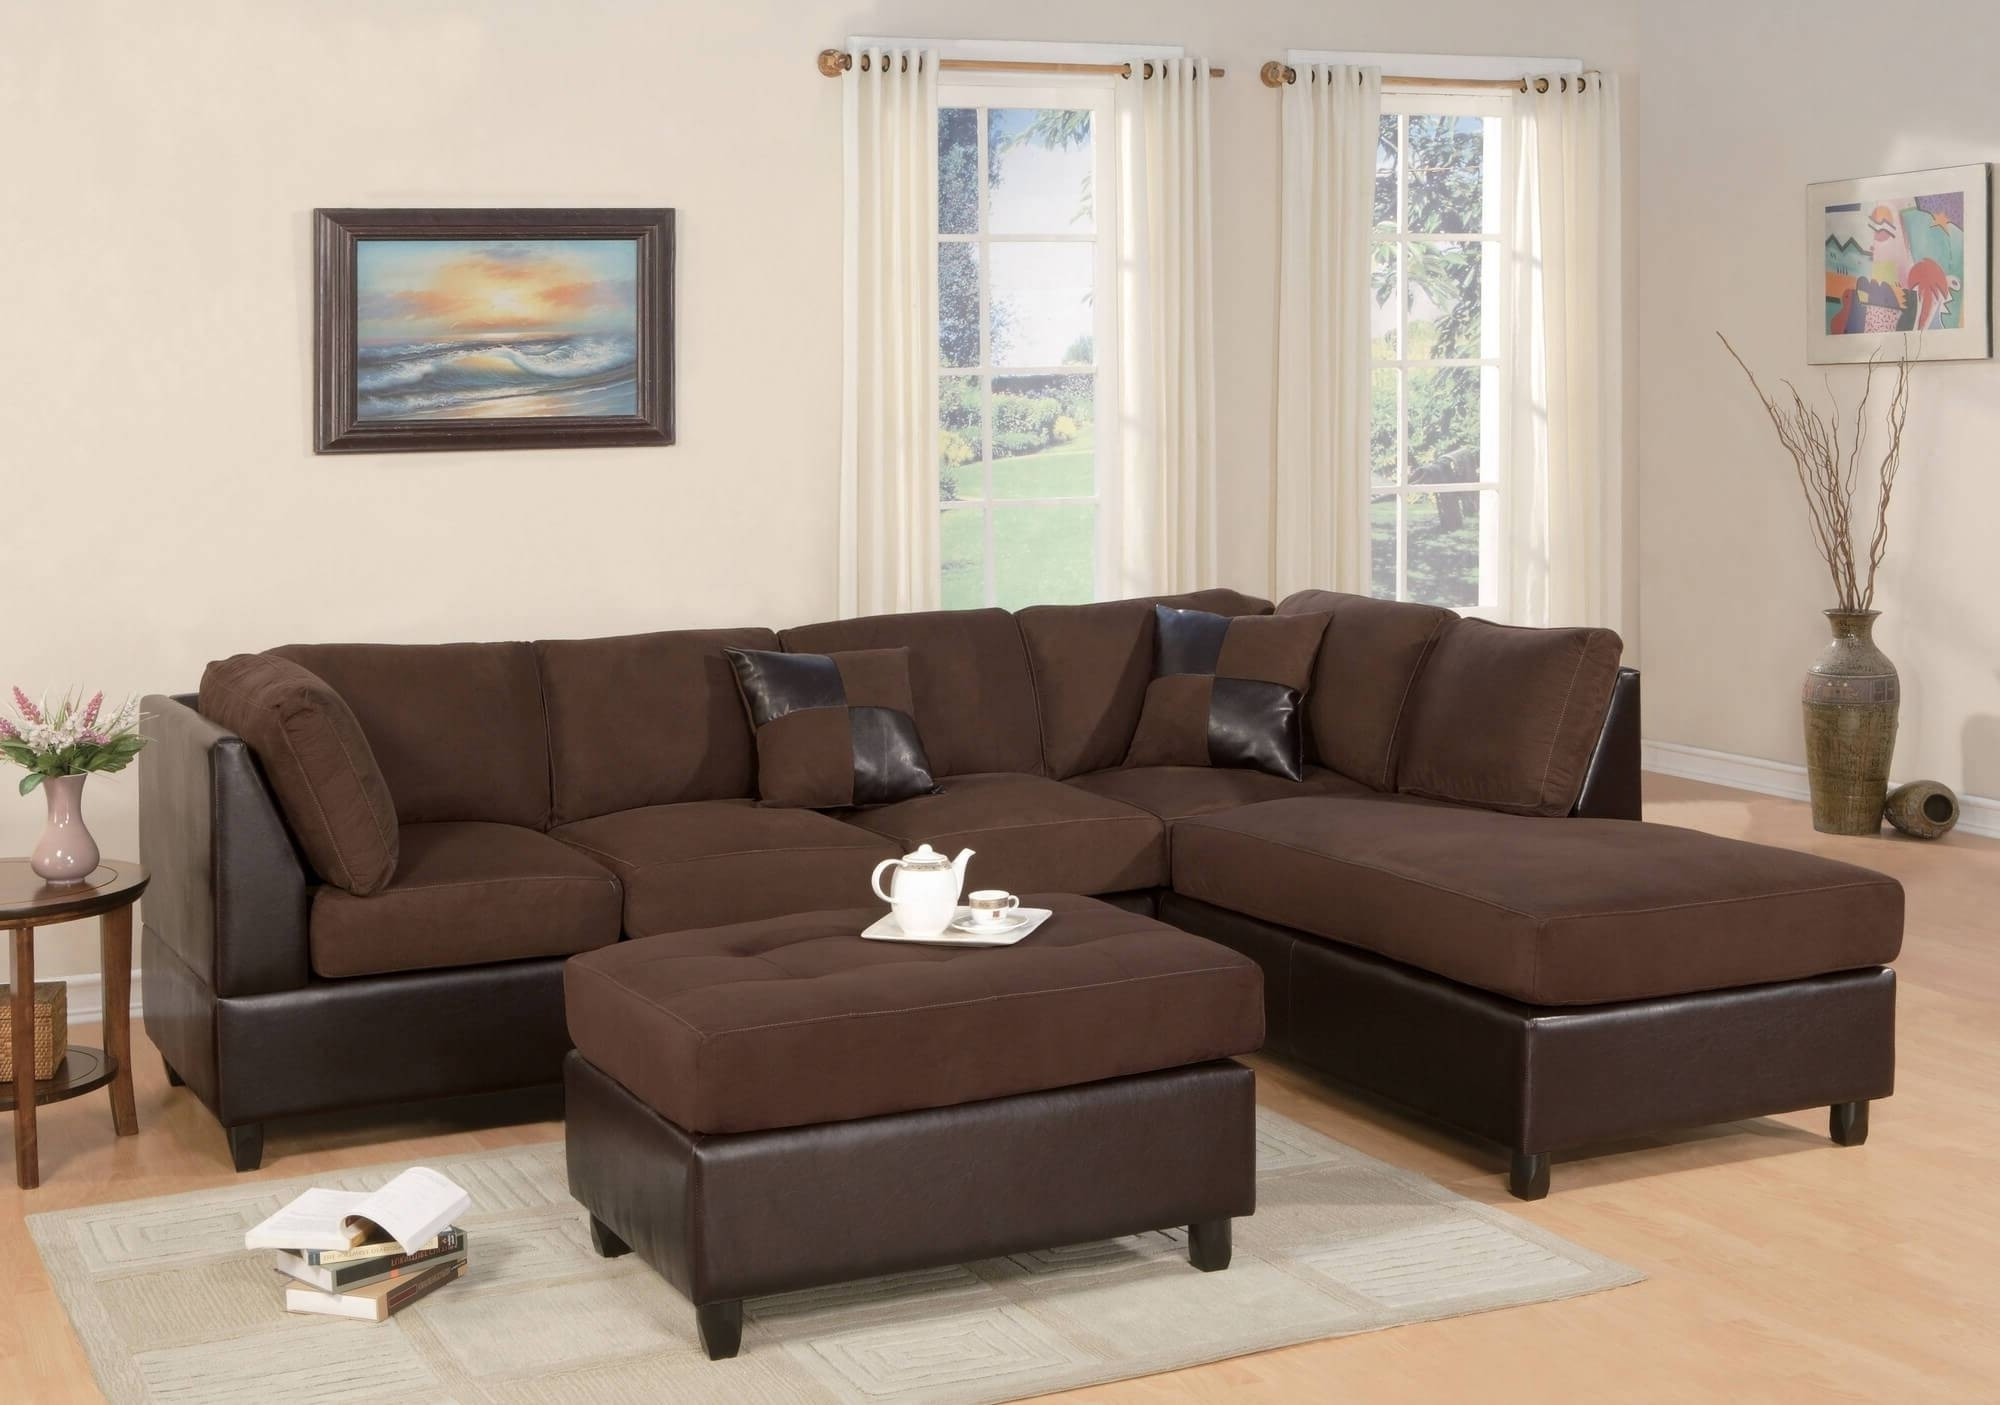 15 Photos Sectional Sofas Under 1000 Within Sectional Sofas Under 1000 (Gallery 7 of 15)